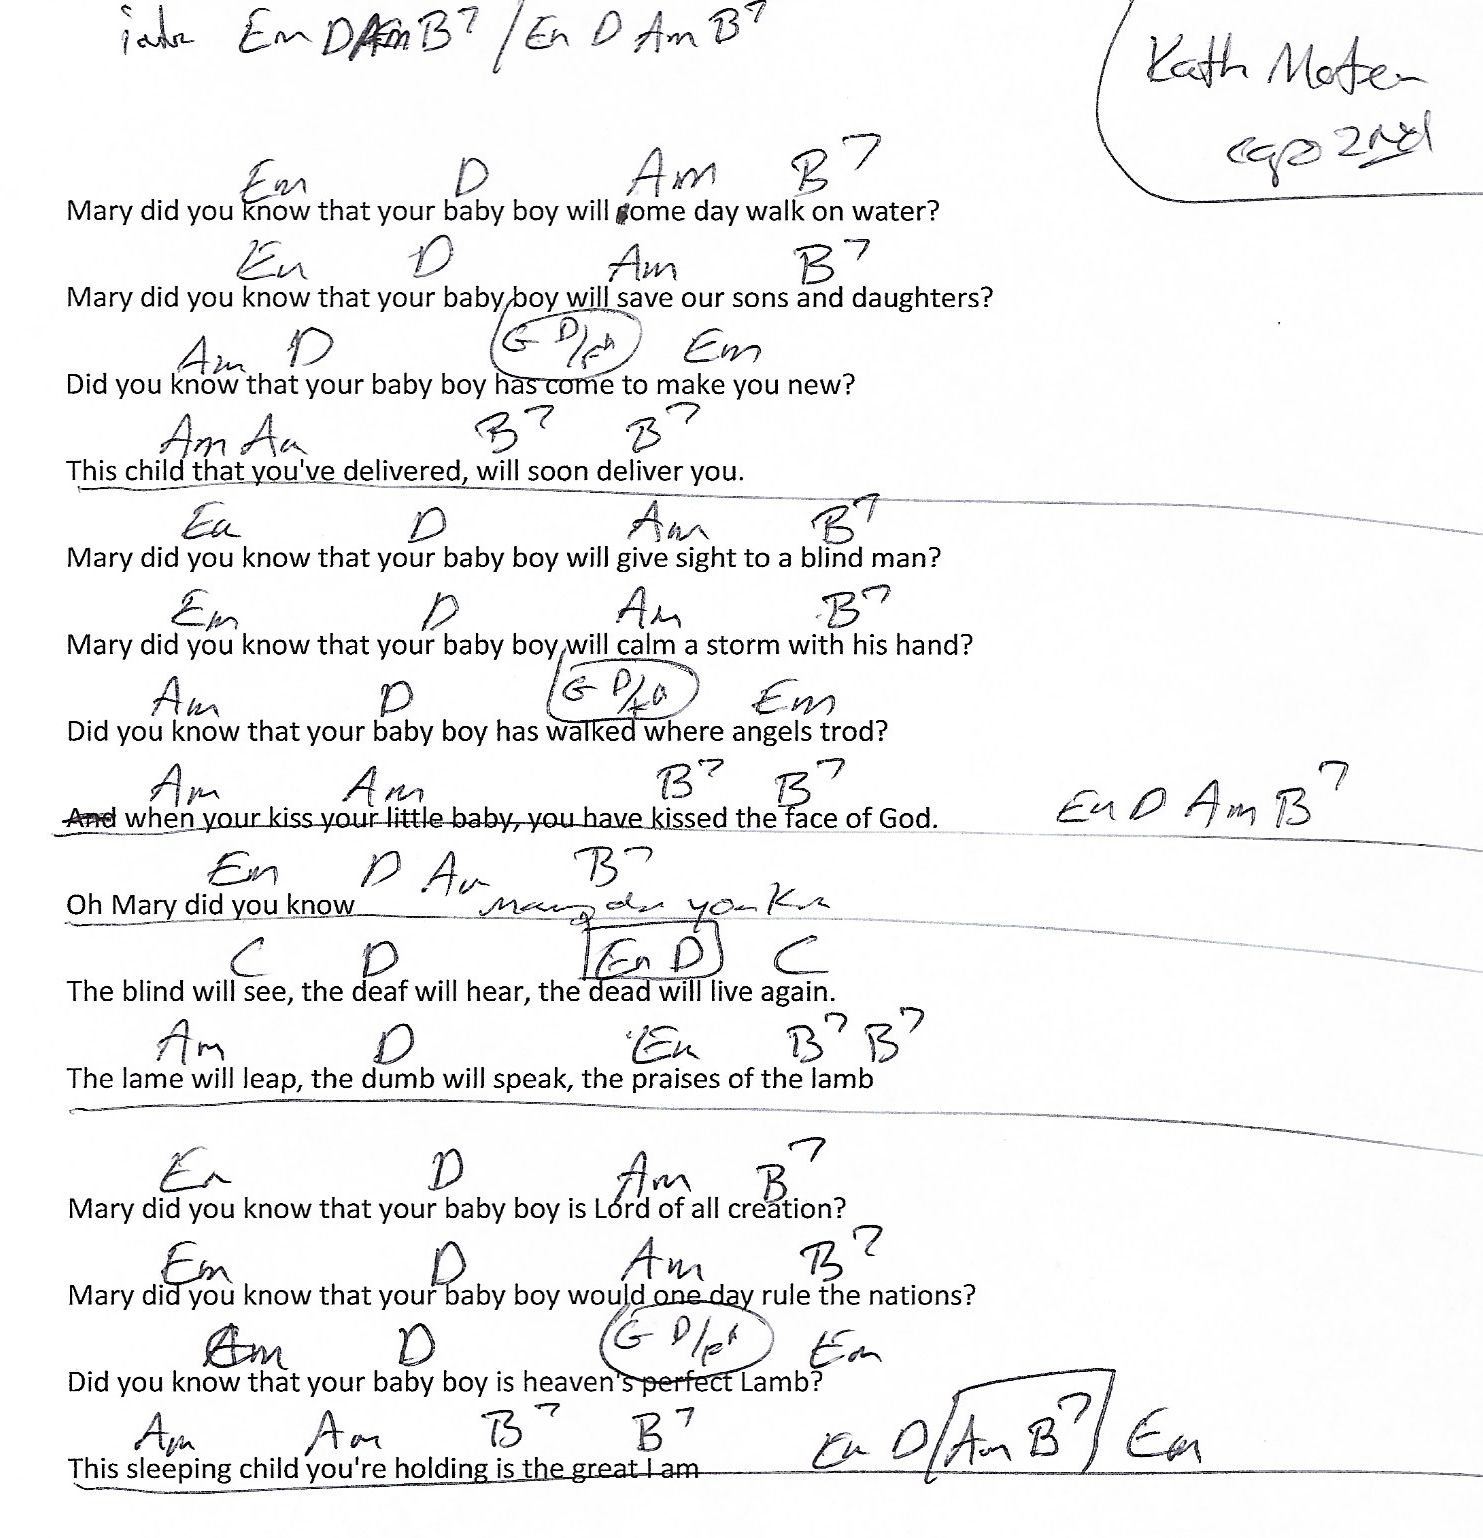 Mary Did You Know (Christmas) Em Minor - Guitar Chord Chart with Lyrics - http://www.youtube.com/munsonmusiclive